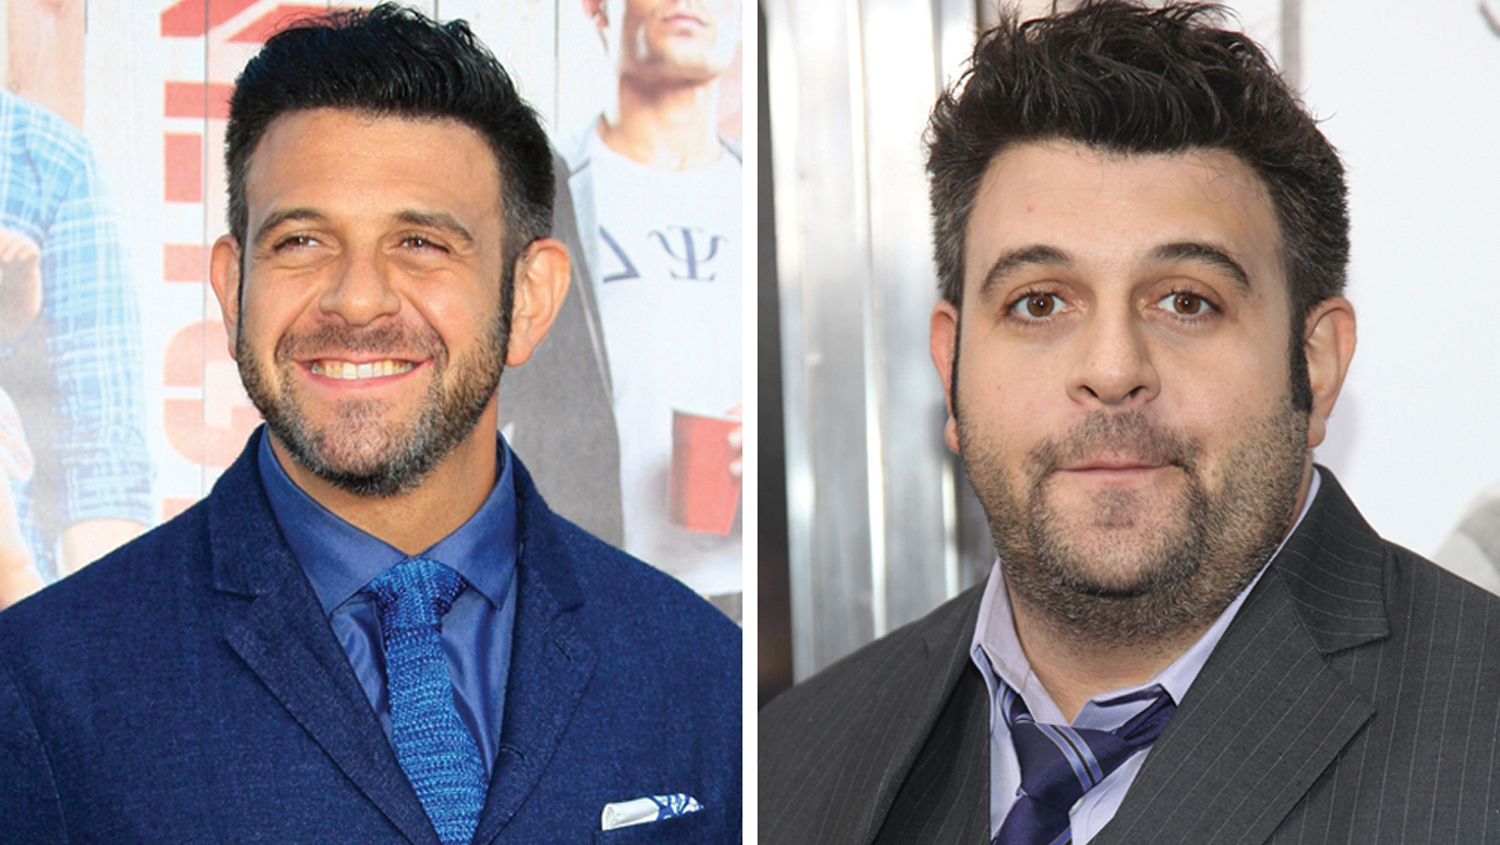 Man V Food Star Defeats Overeating Loses 70 Pounds